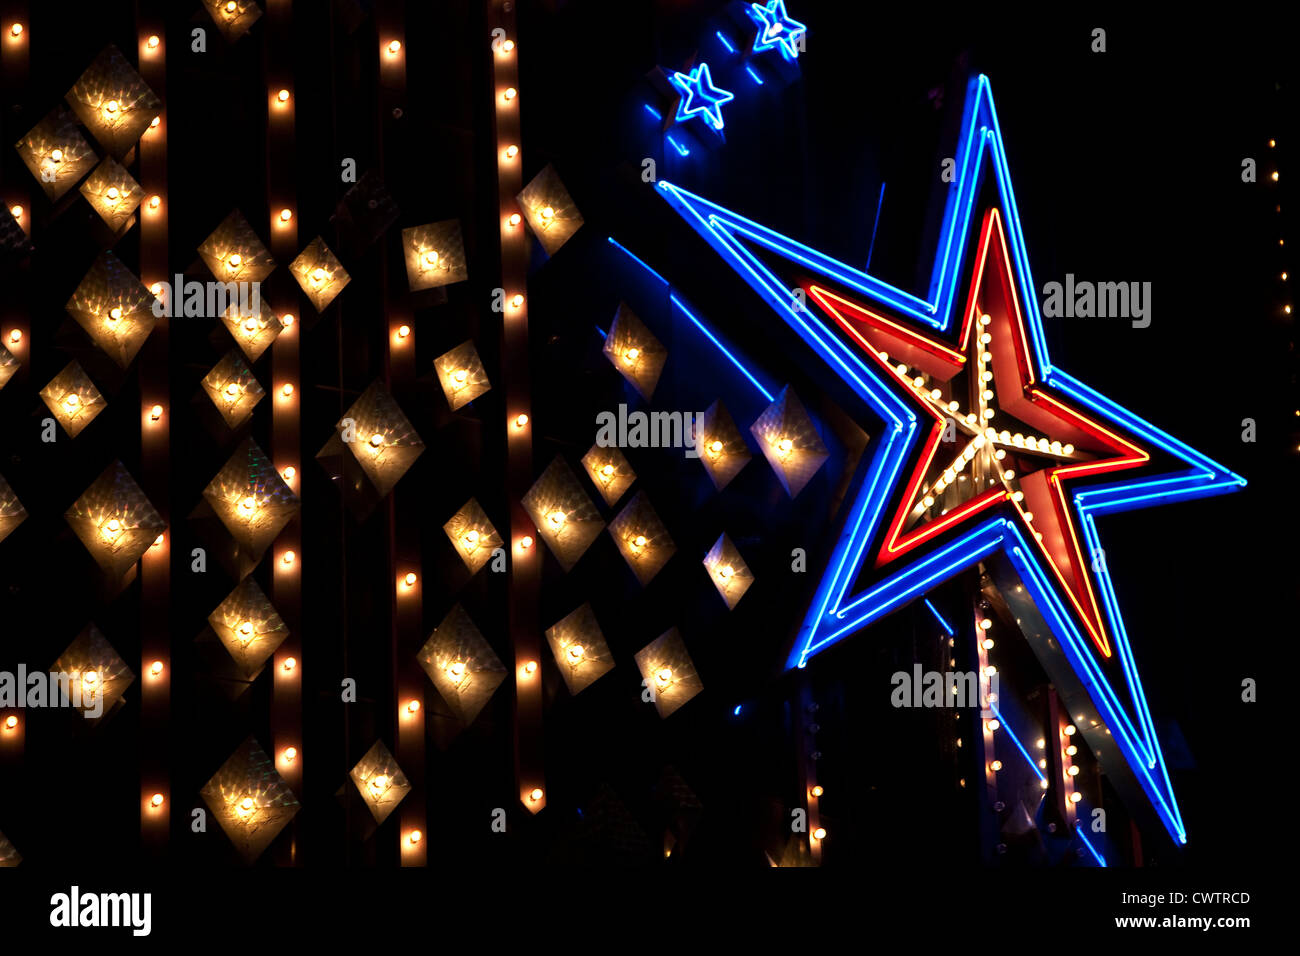 blue neon star light and white lights on a black background abstract - Stock Image